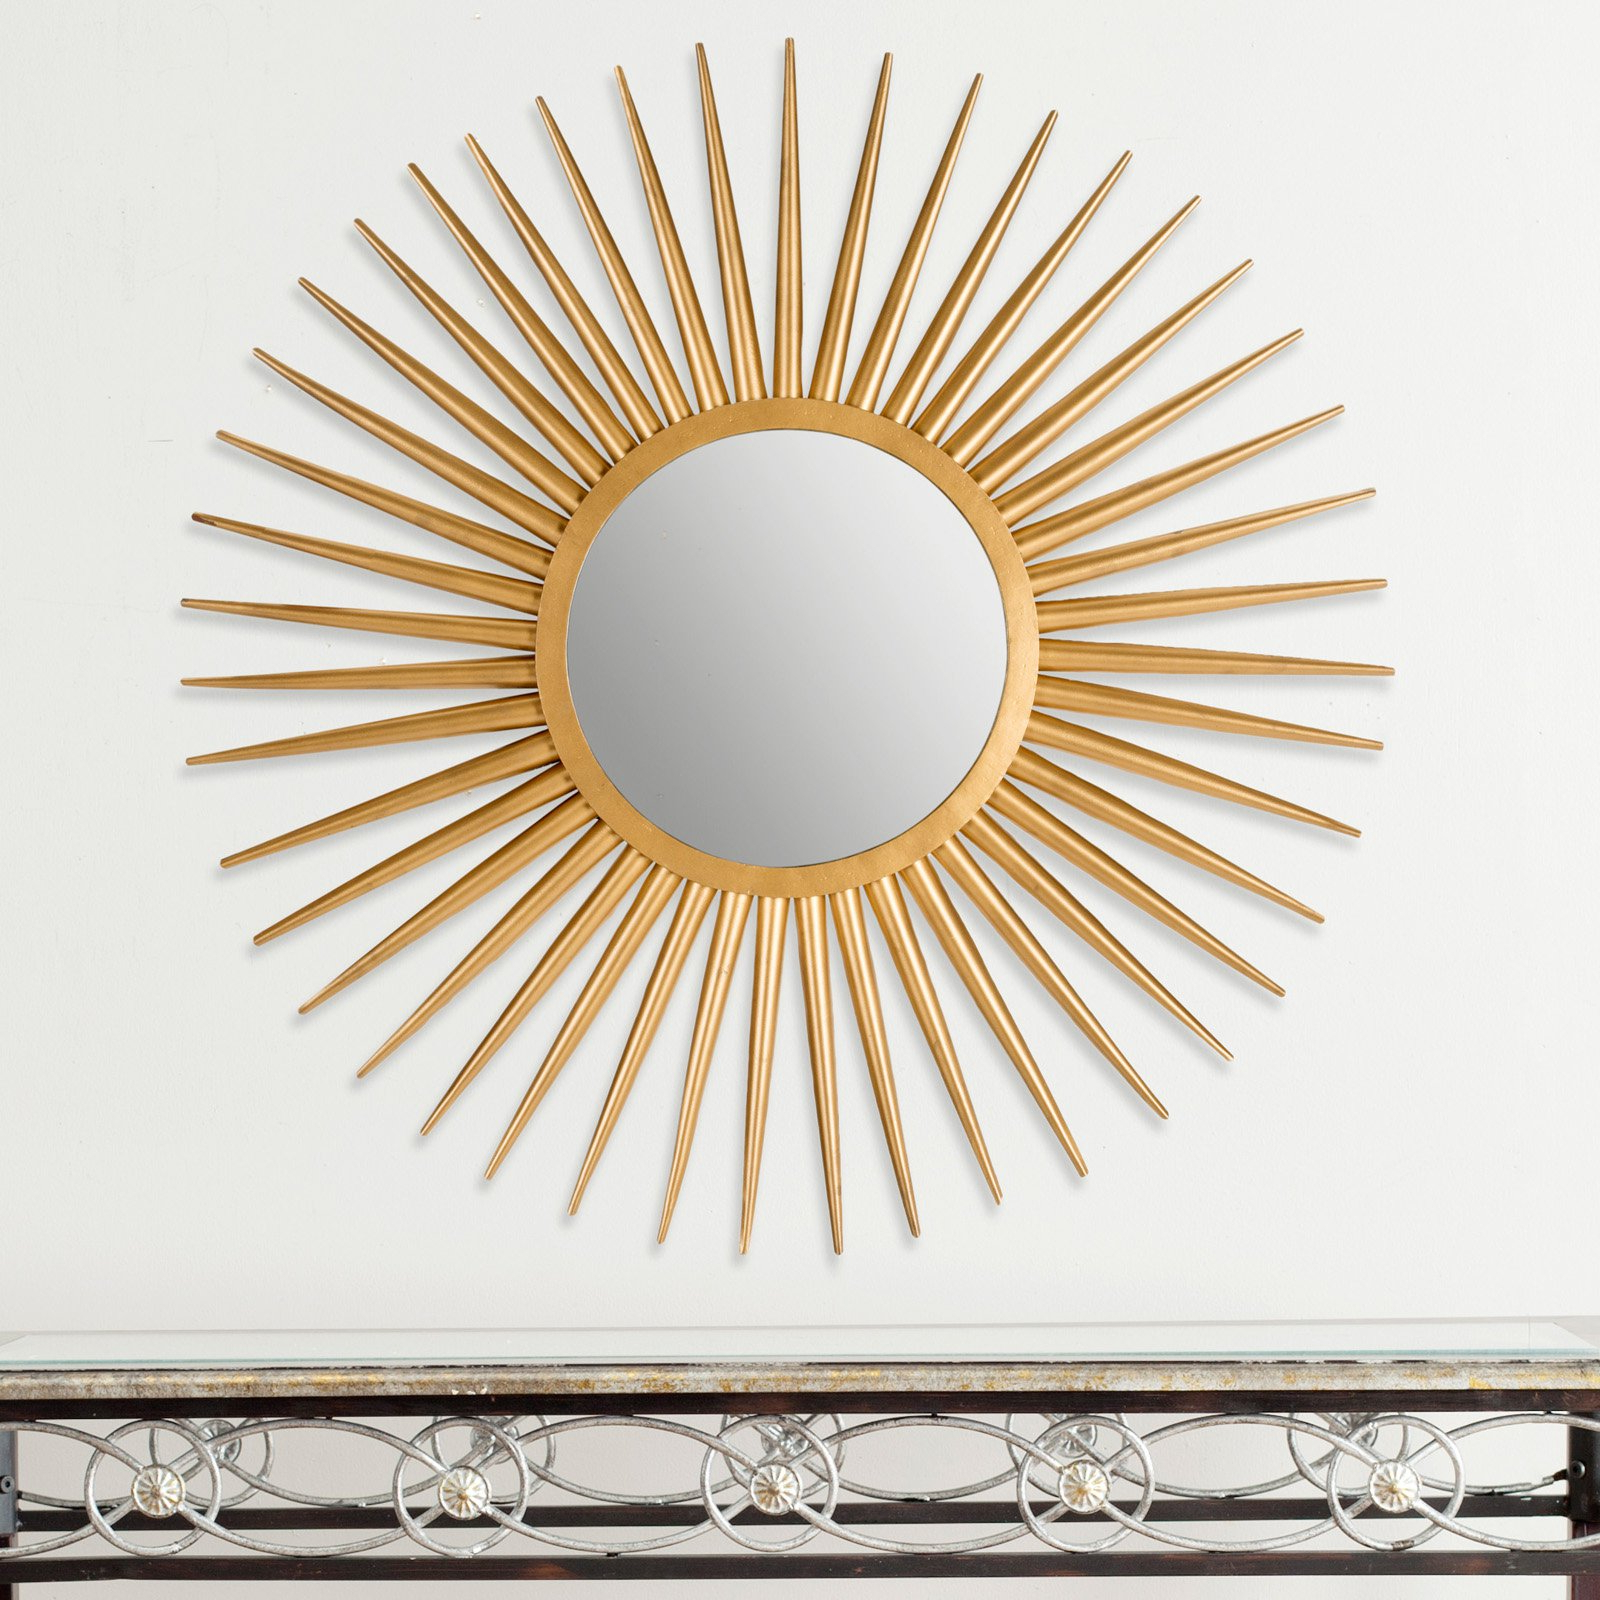 Traditional Metal Wall Mirrors Throughout Popular Safavieh Sun Flair Metal Wall Mirror – 36w X 36h In (View 15 of 20)